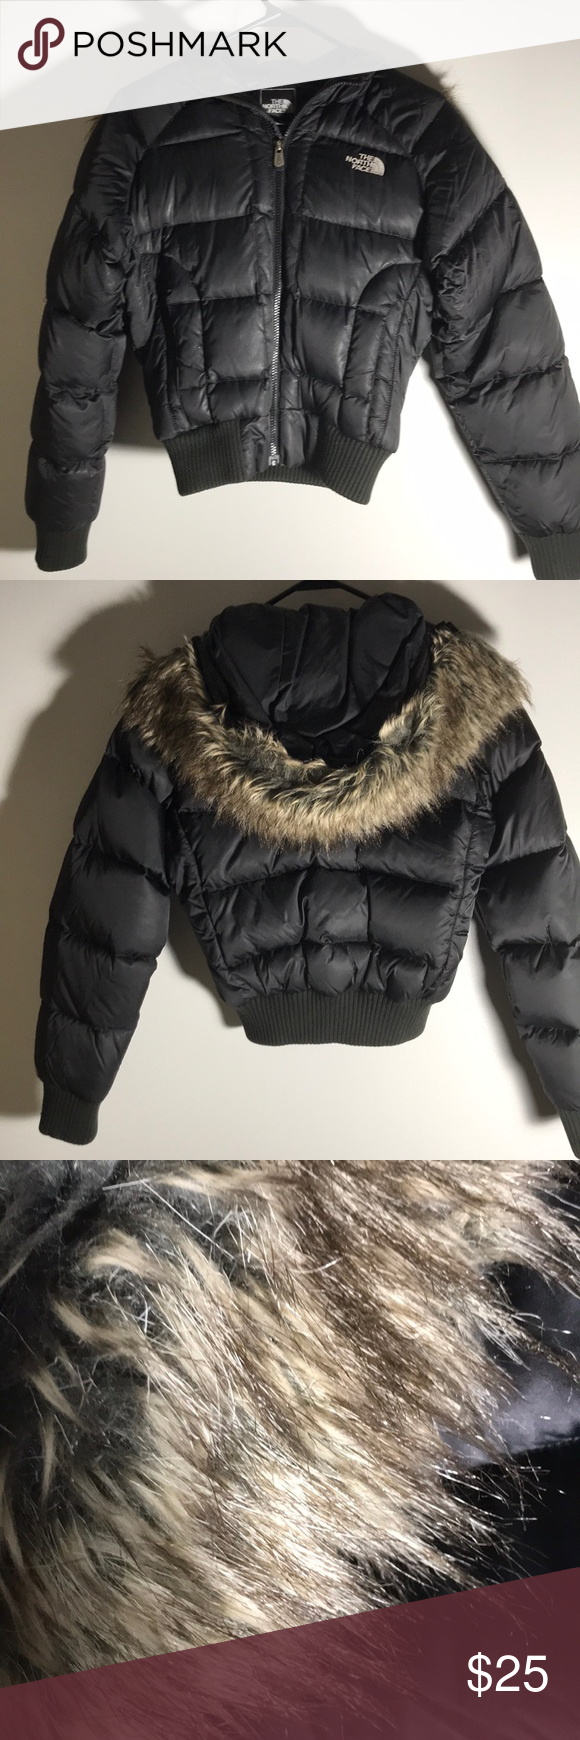 Cropped Northface Puffer Coat Puffer Coat Northface Puffer The North Face [ 1740 x 580 Pixel ]